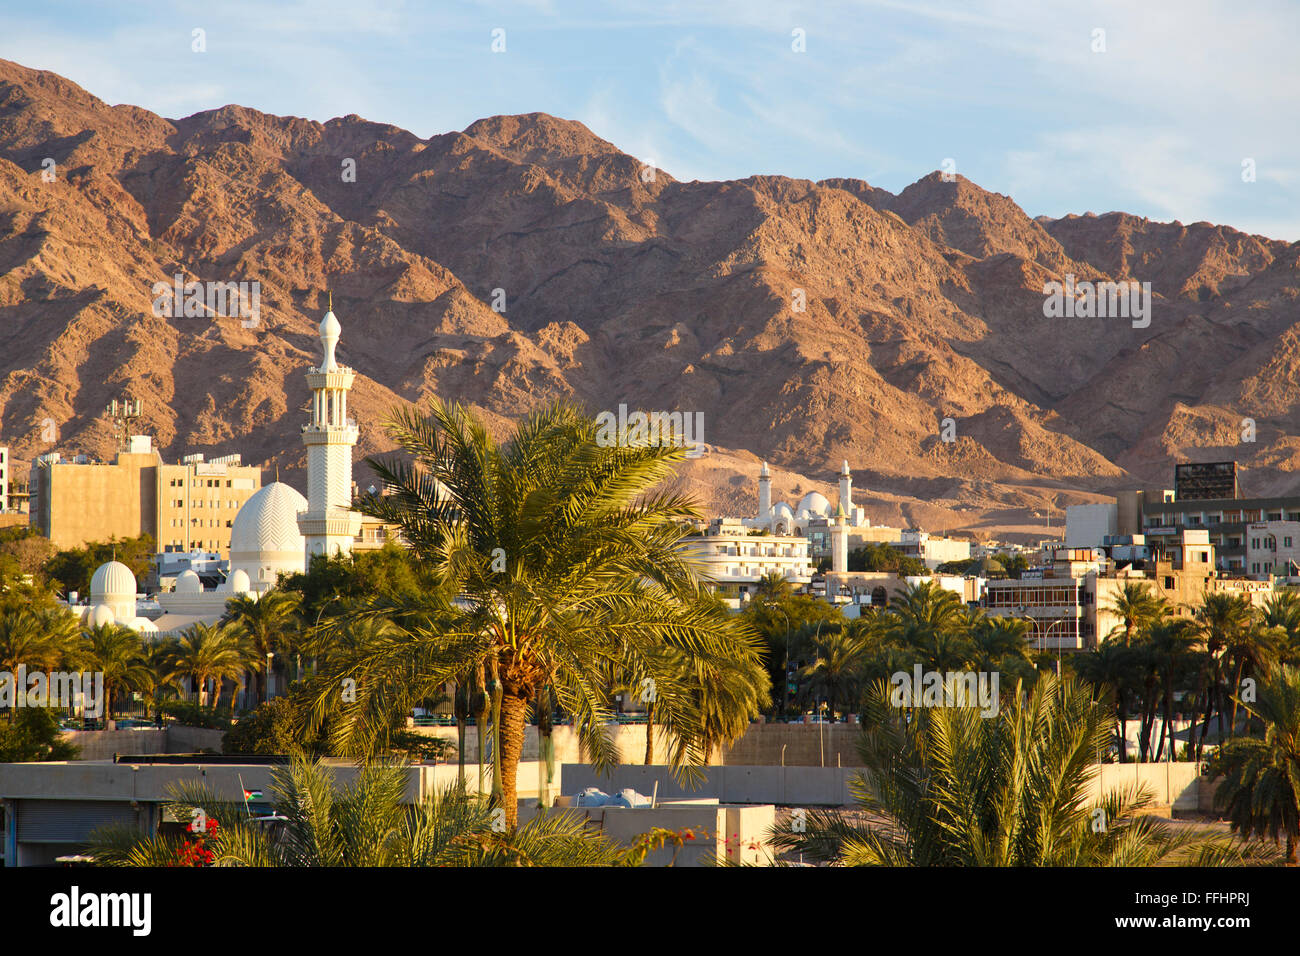 The city of Aqaba, Jordan - Stock Image